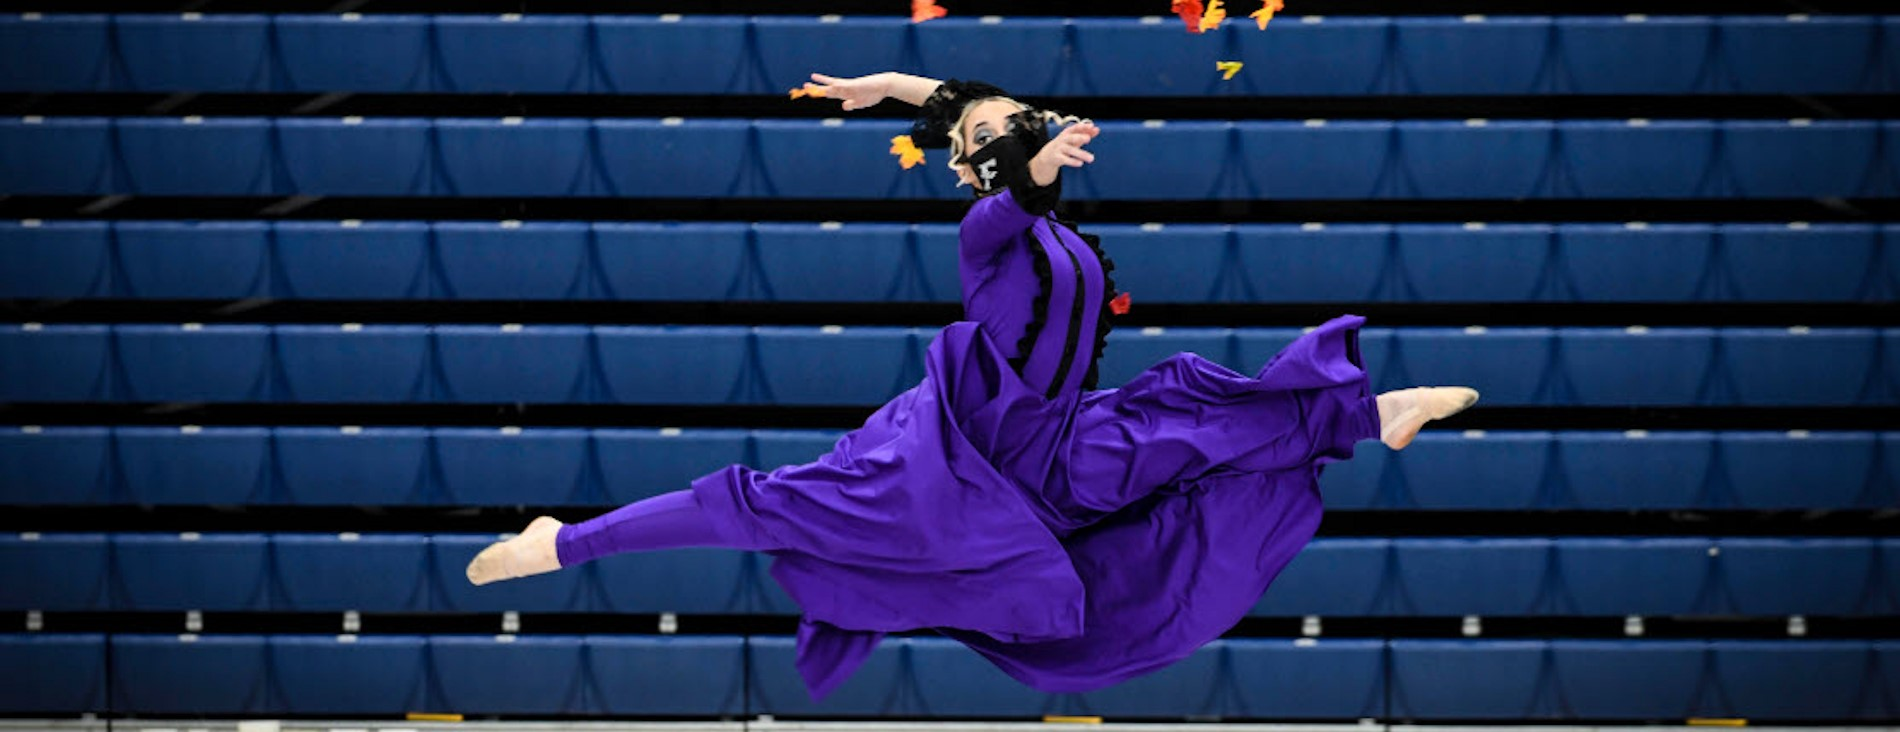 Olivia O., a members of Fairmont High School's Color Guard, performs her routine during a competition at Trent Arena.